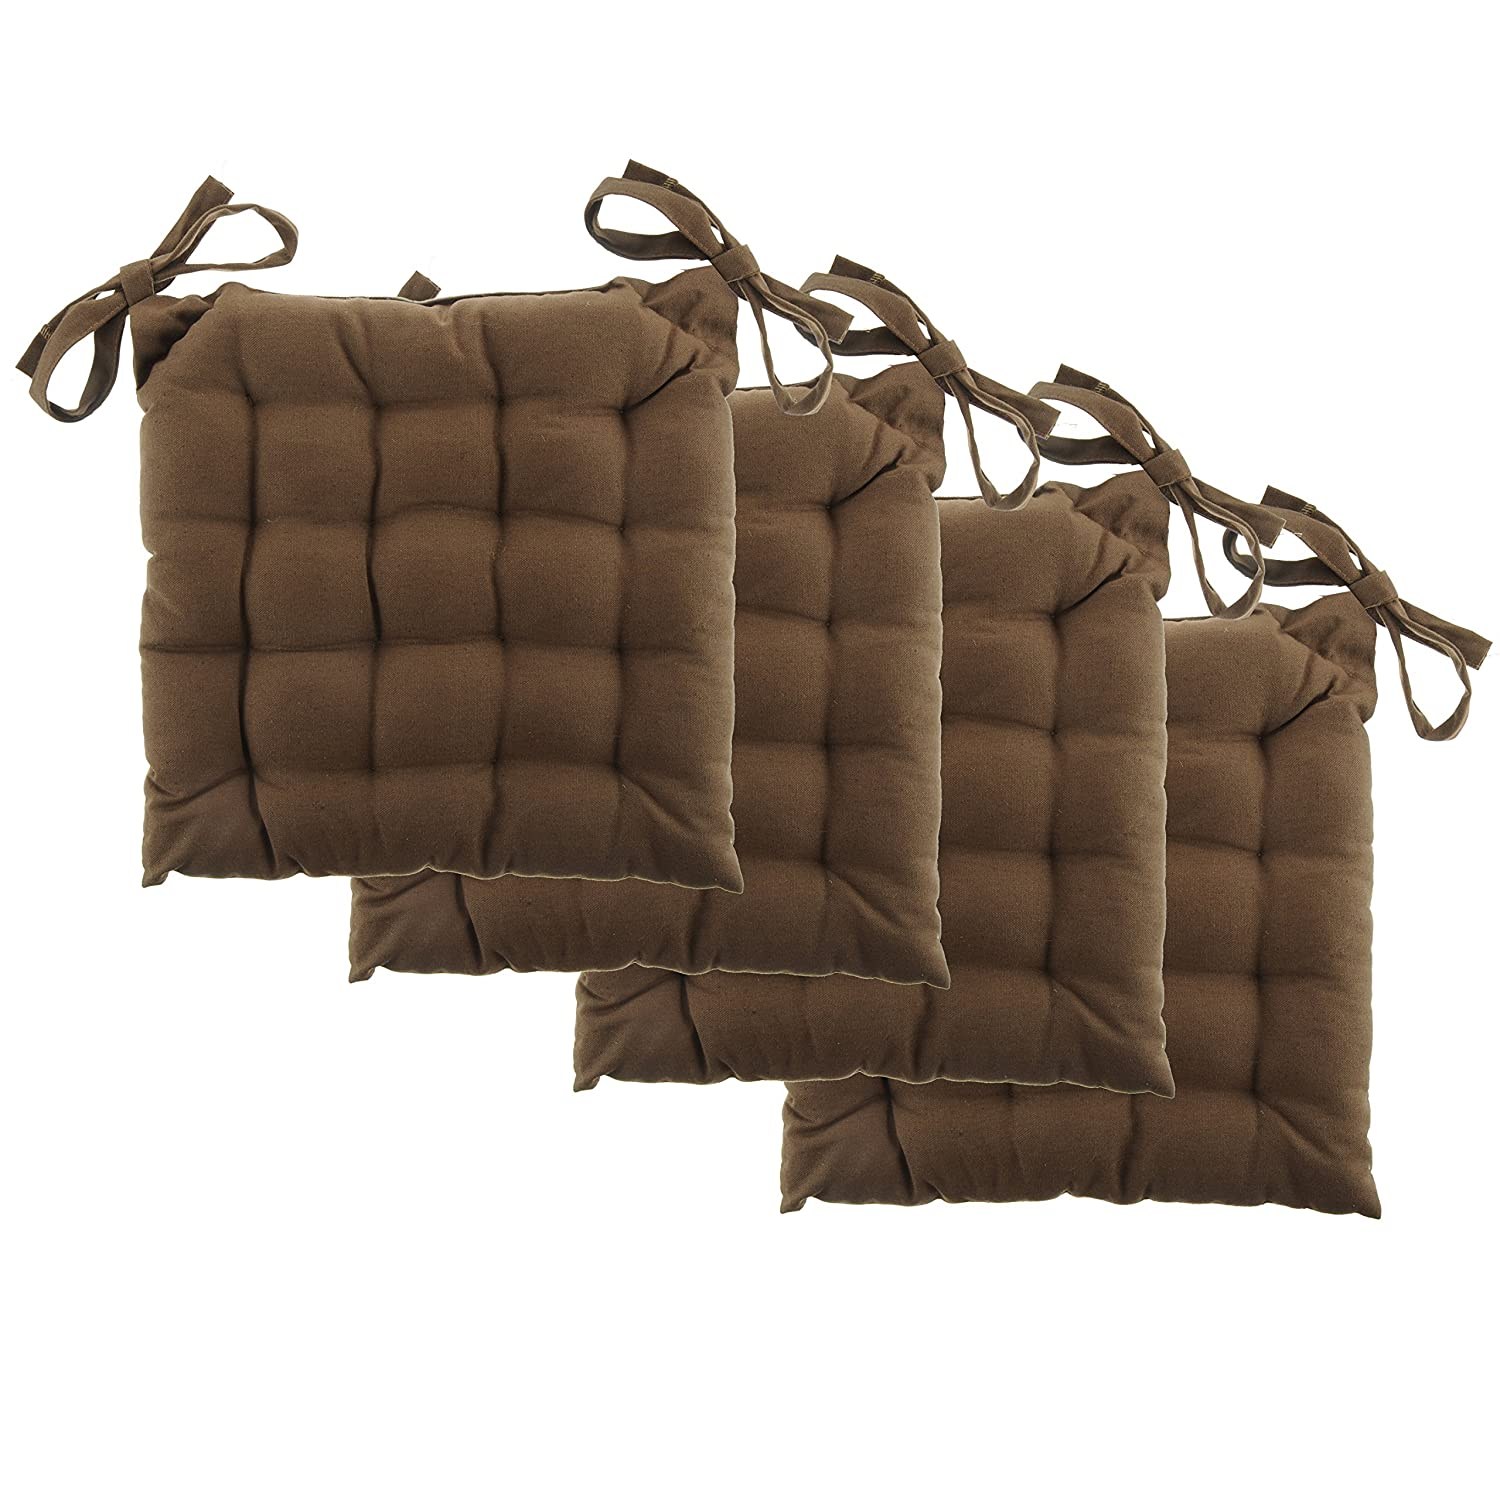 """White Dove Chair Pads - Cotton Canvas - Value 4 Pack - Fits 15"""" Chair - Solid Color - Classic Design, by Unity (French Toast)"""